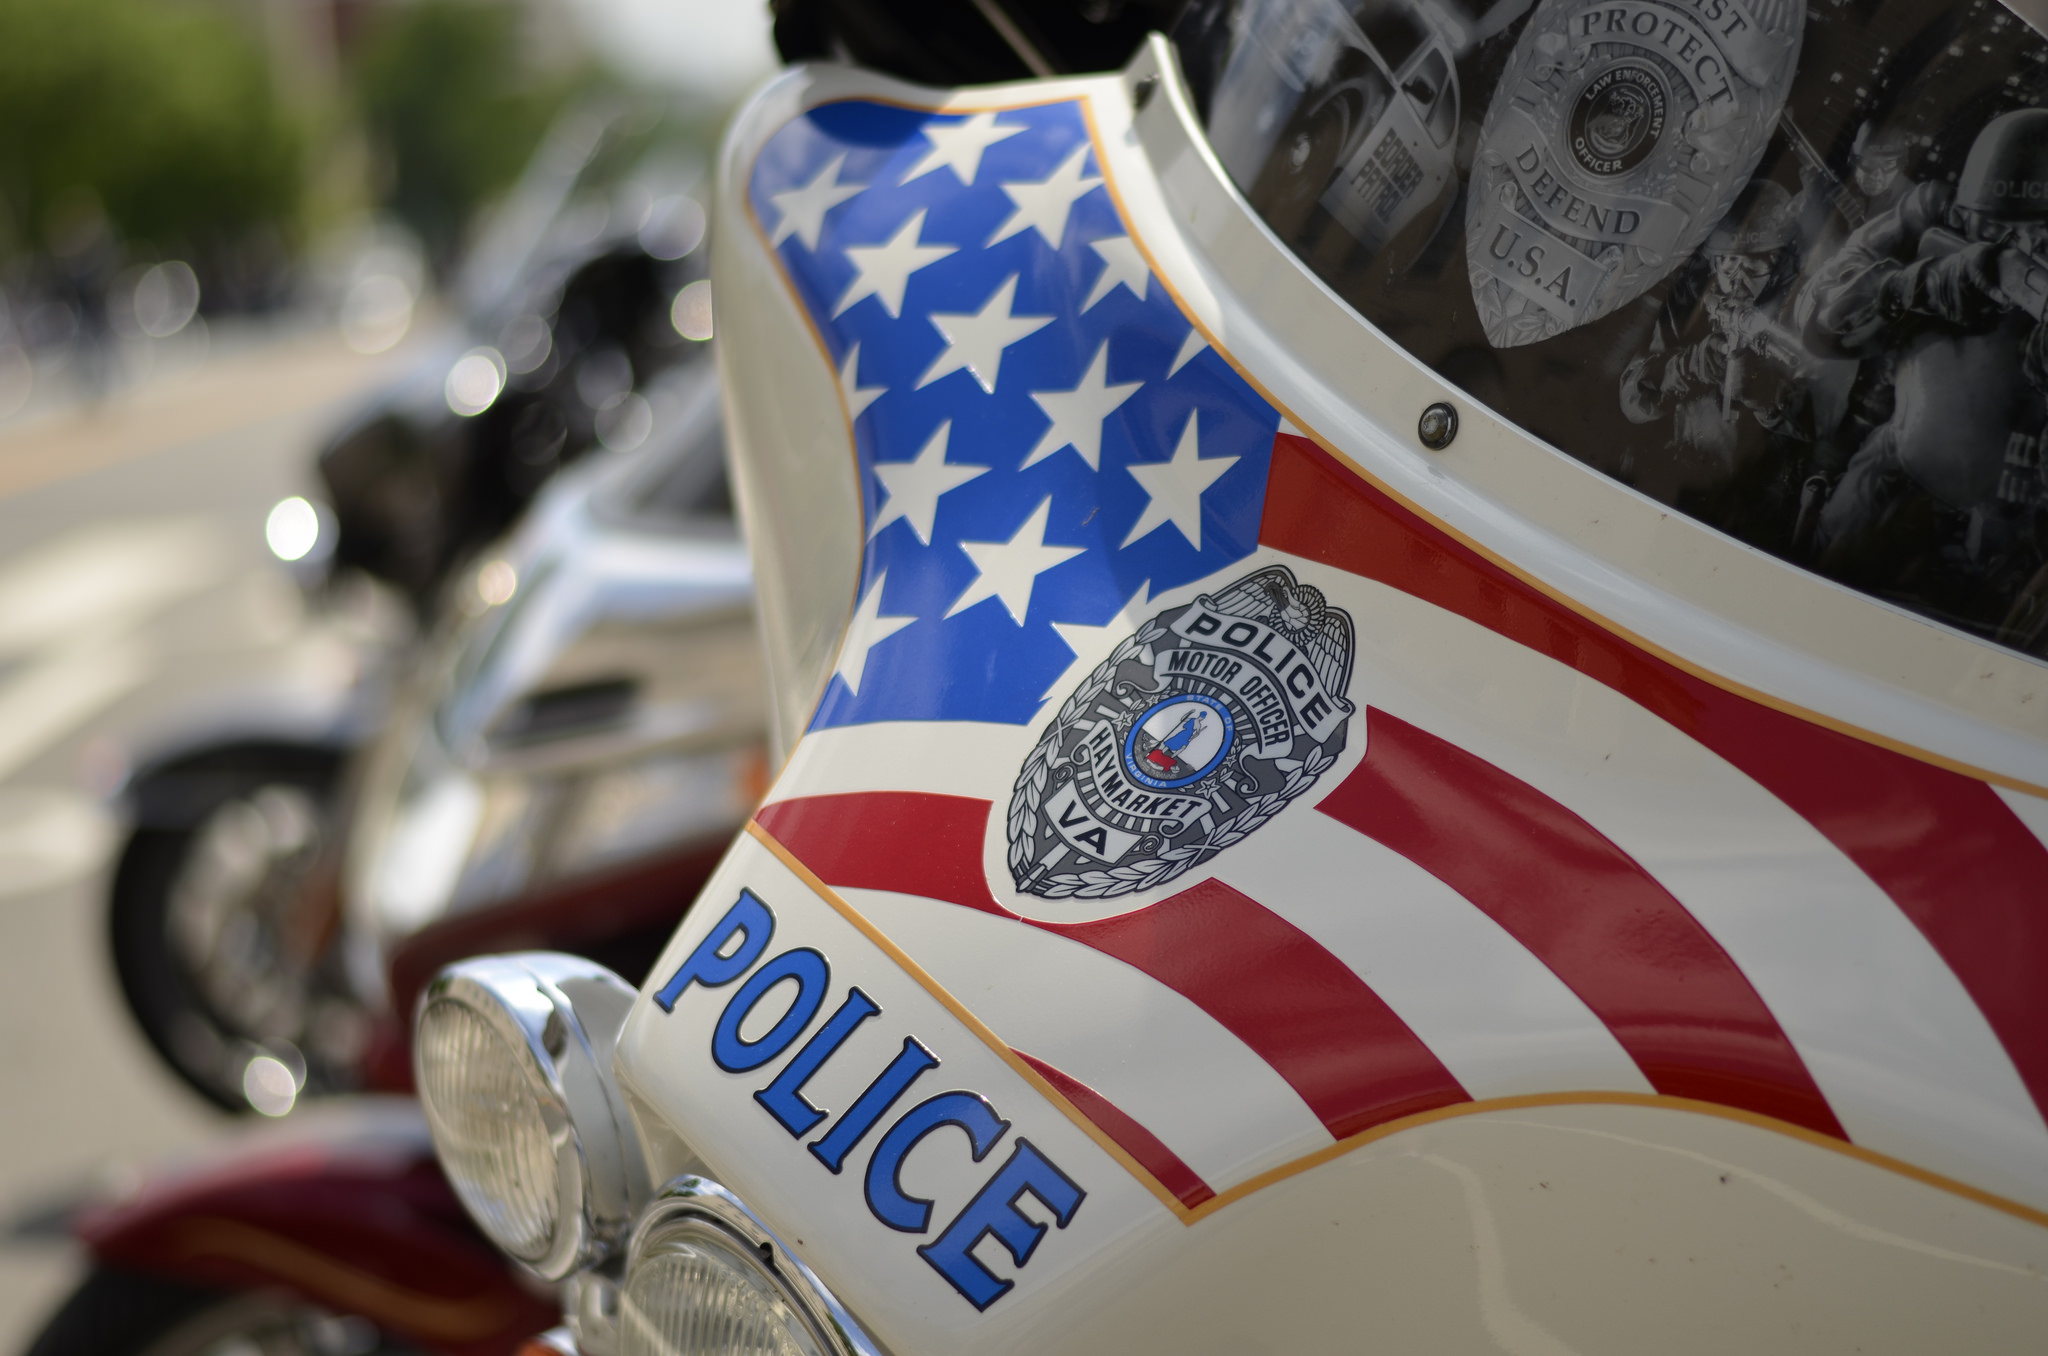 Photo by National Law Enforcement Officers Memorial Fund via Flickr